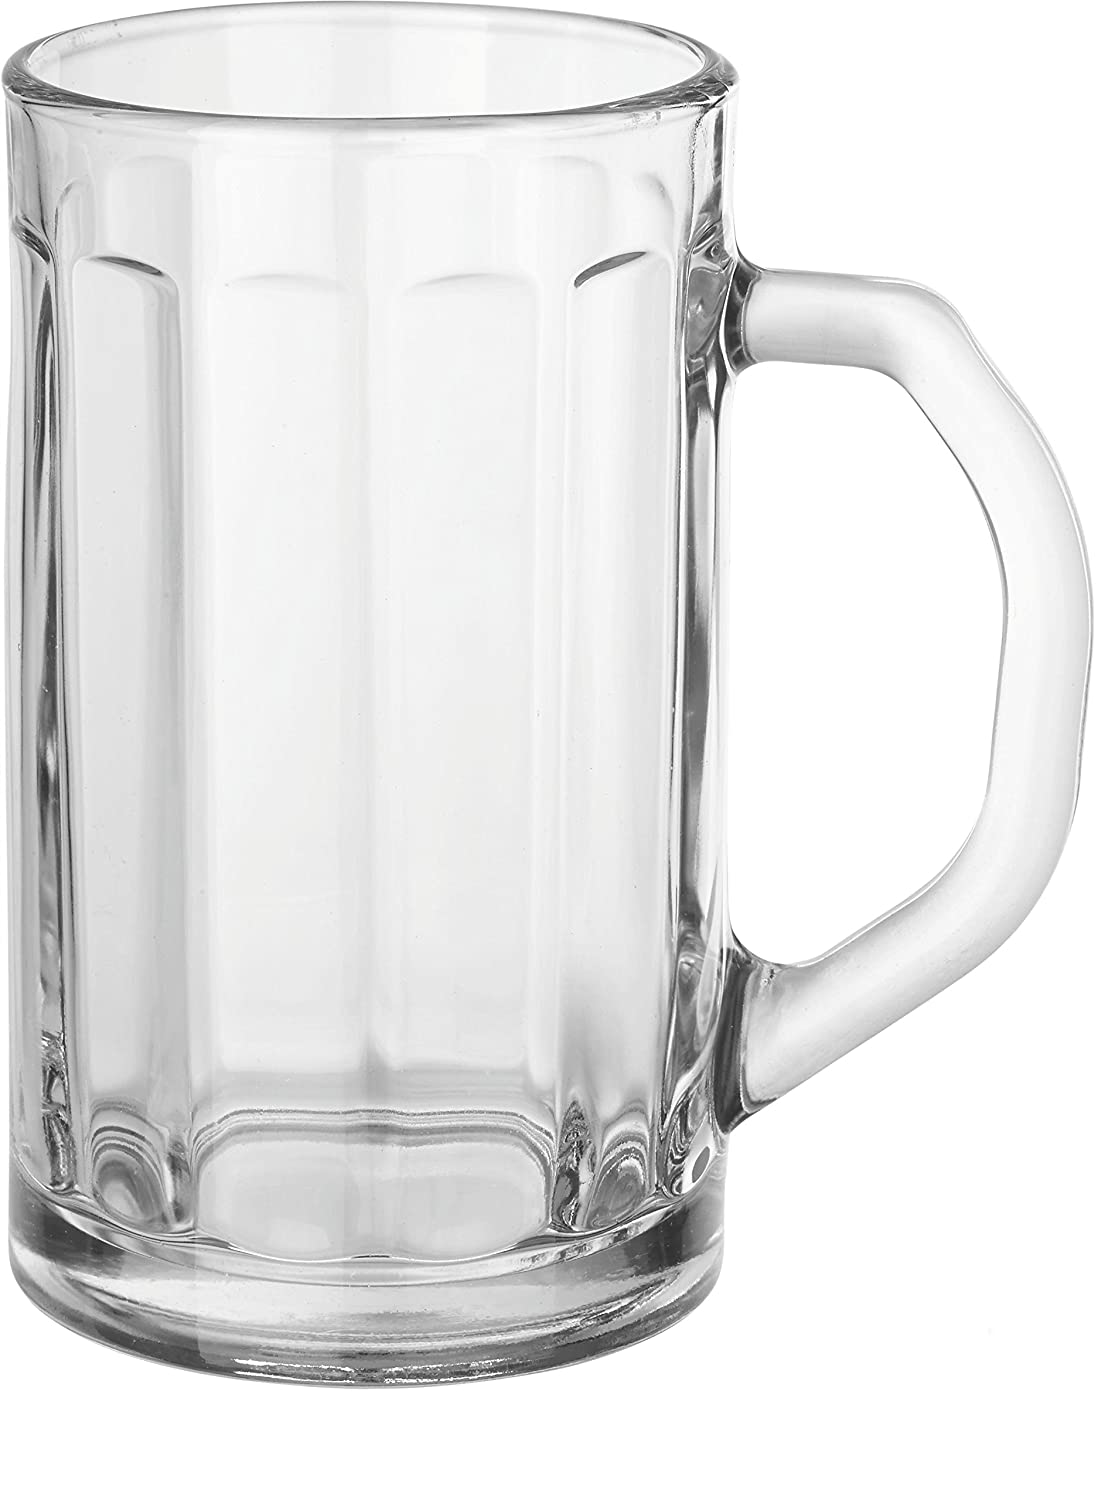 Circleware 55673 Glass Beer Mugs with Handle, Set of 2 Heavy Base Fun Entertainment Glassware Beverage Drinking Cups for Water, Wine, Juice and Bar Dining Decor Novelty Gift, 16.4 oz, Downtown Pub 2pc